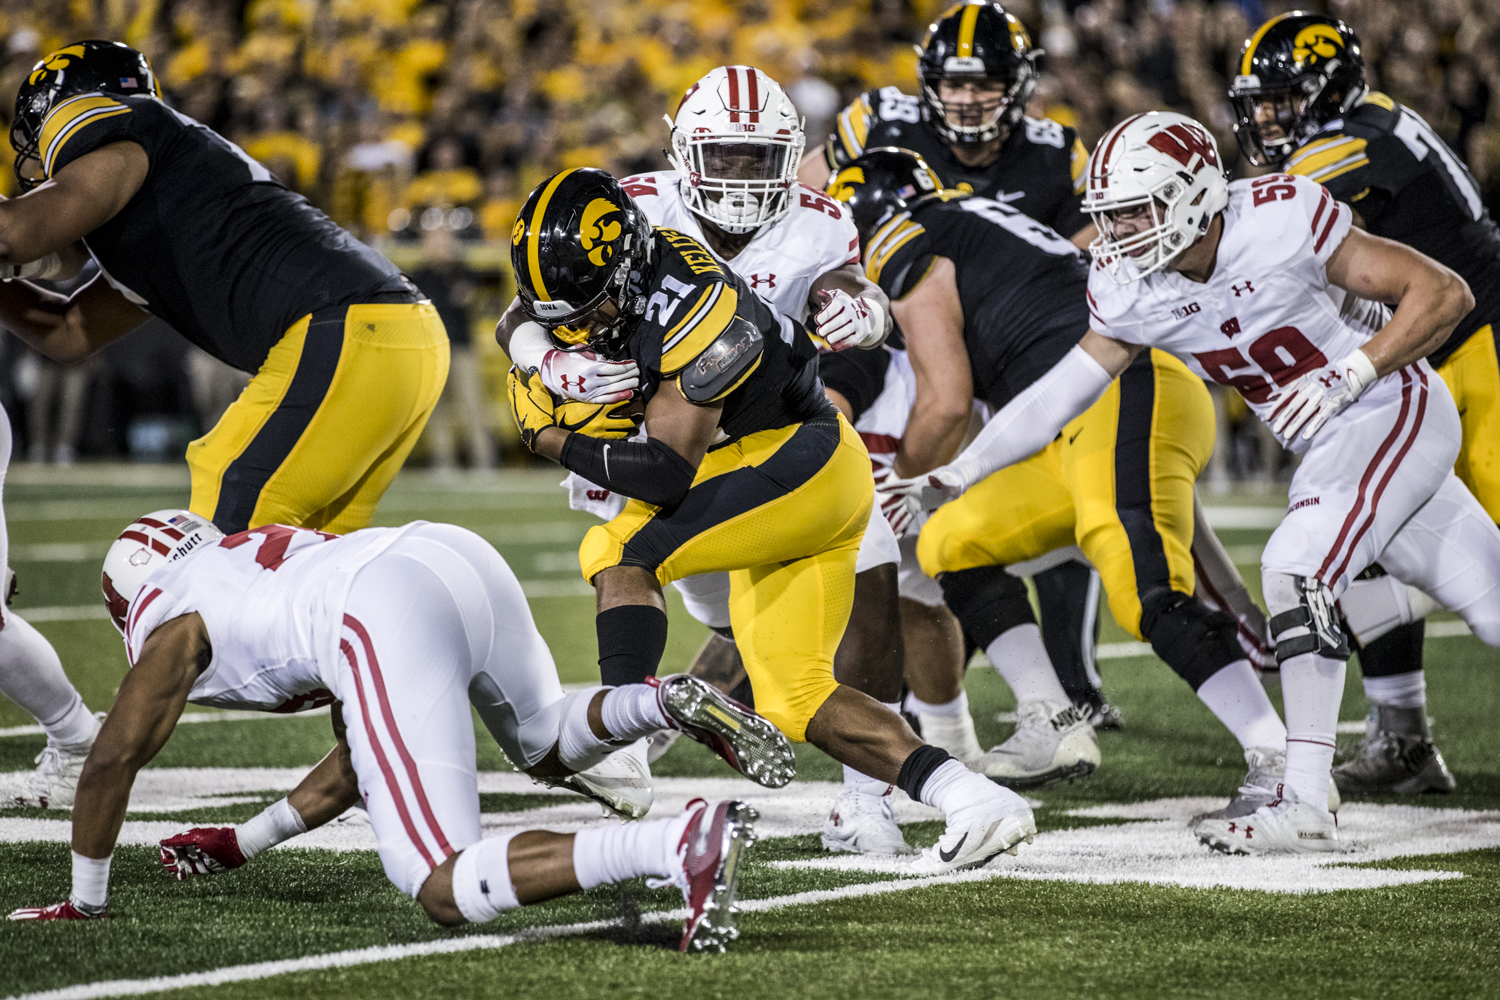 Iowa+running+back+Ivory+Kelly-Marthin+carries+the+ball+during+Iowa%27s+game+against+Wisconsin+at+Kinnick+Stadium+on+Saturday%2C+September+22%2C+2018.+The+Badgers+defeated+the+Hawkeyes+28-17.